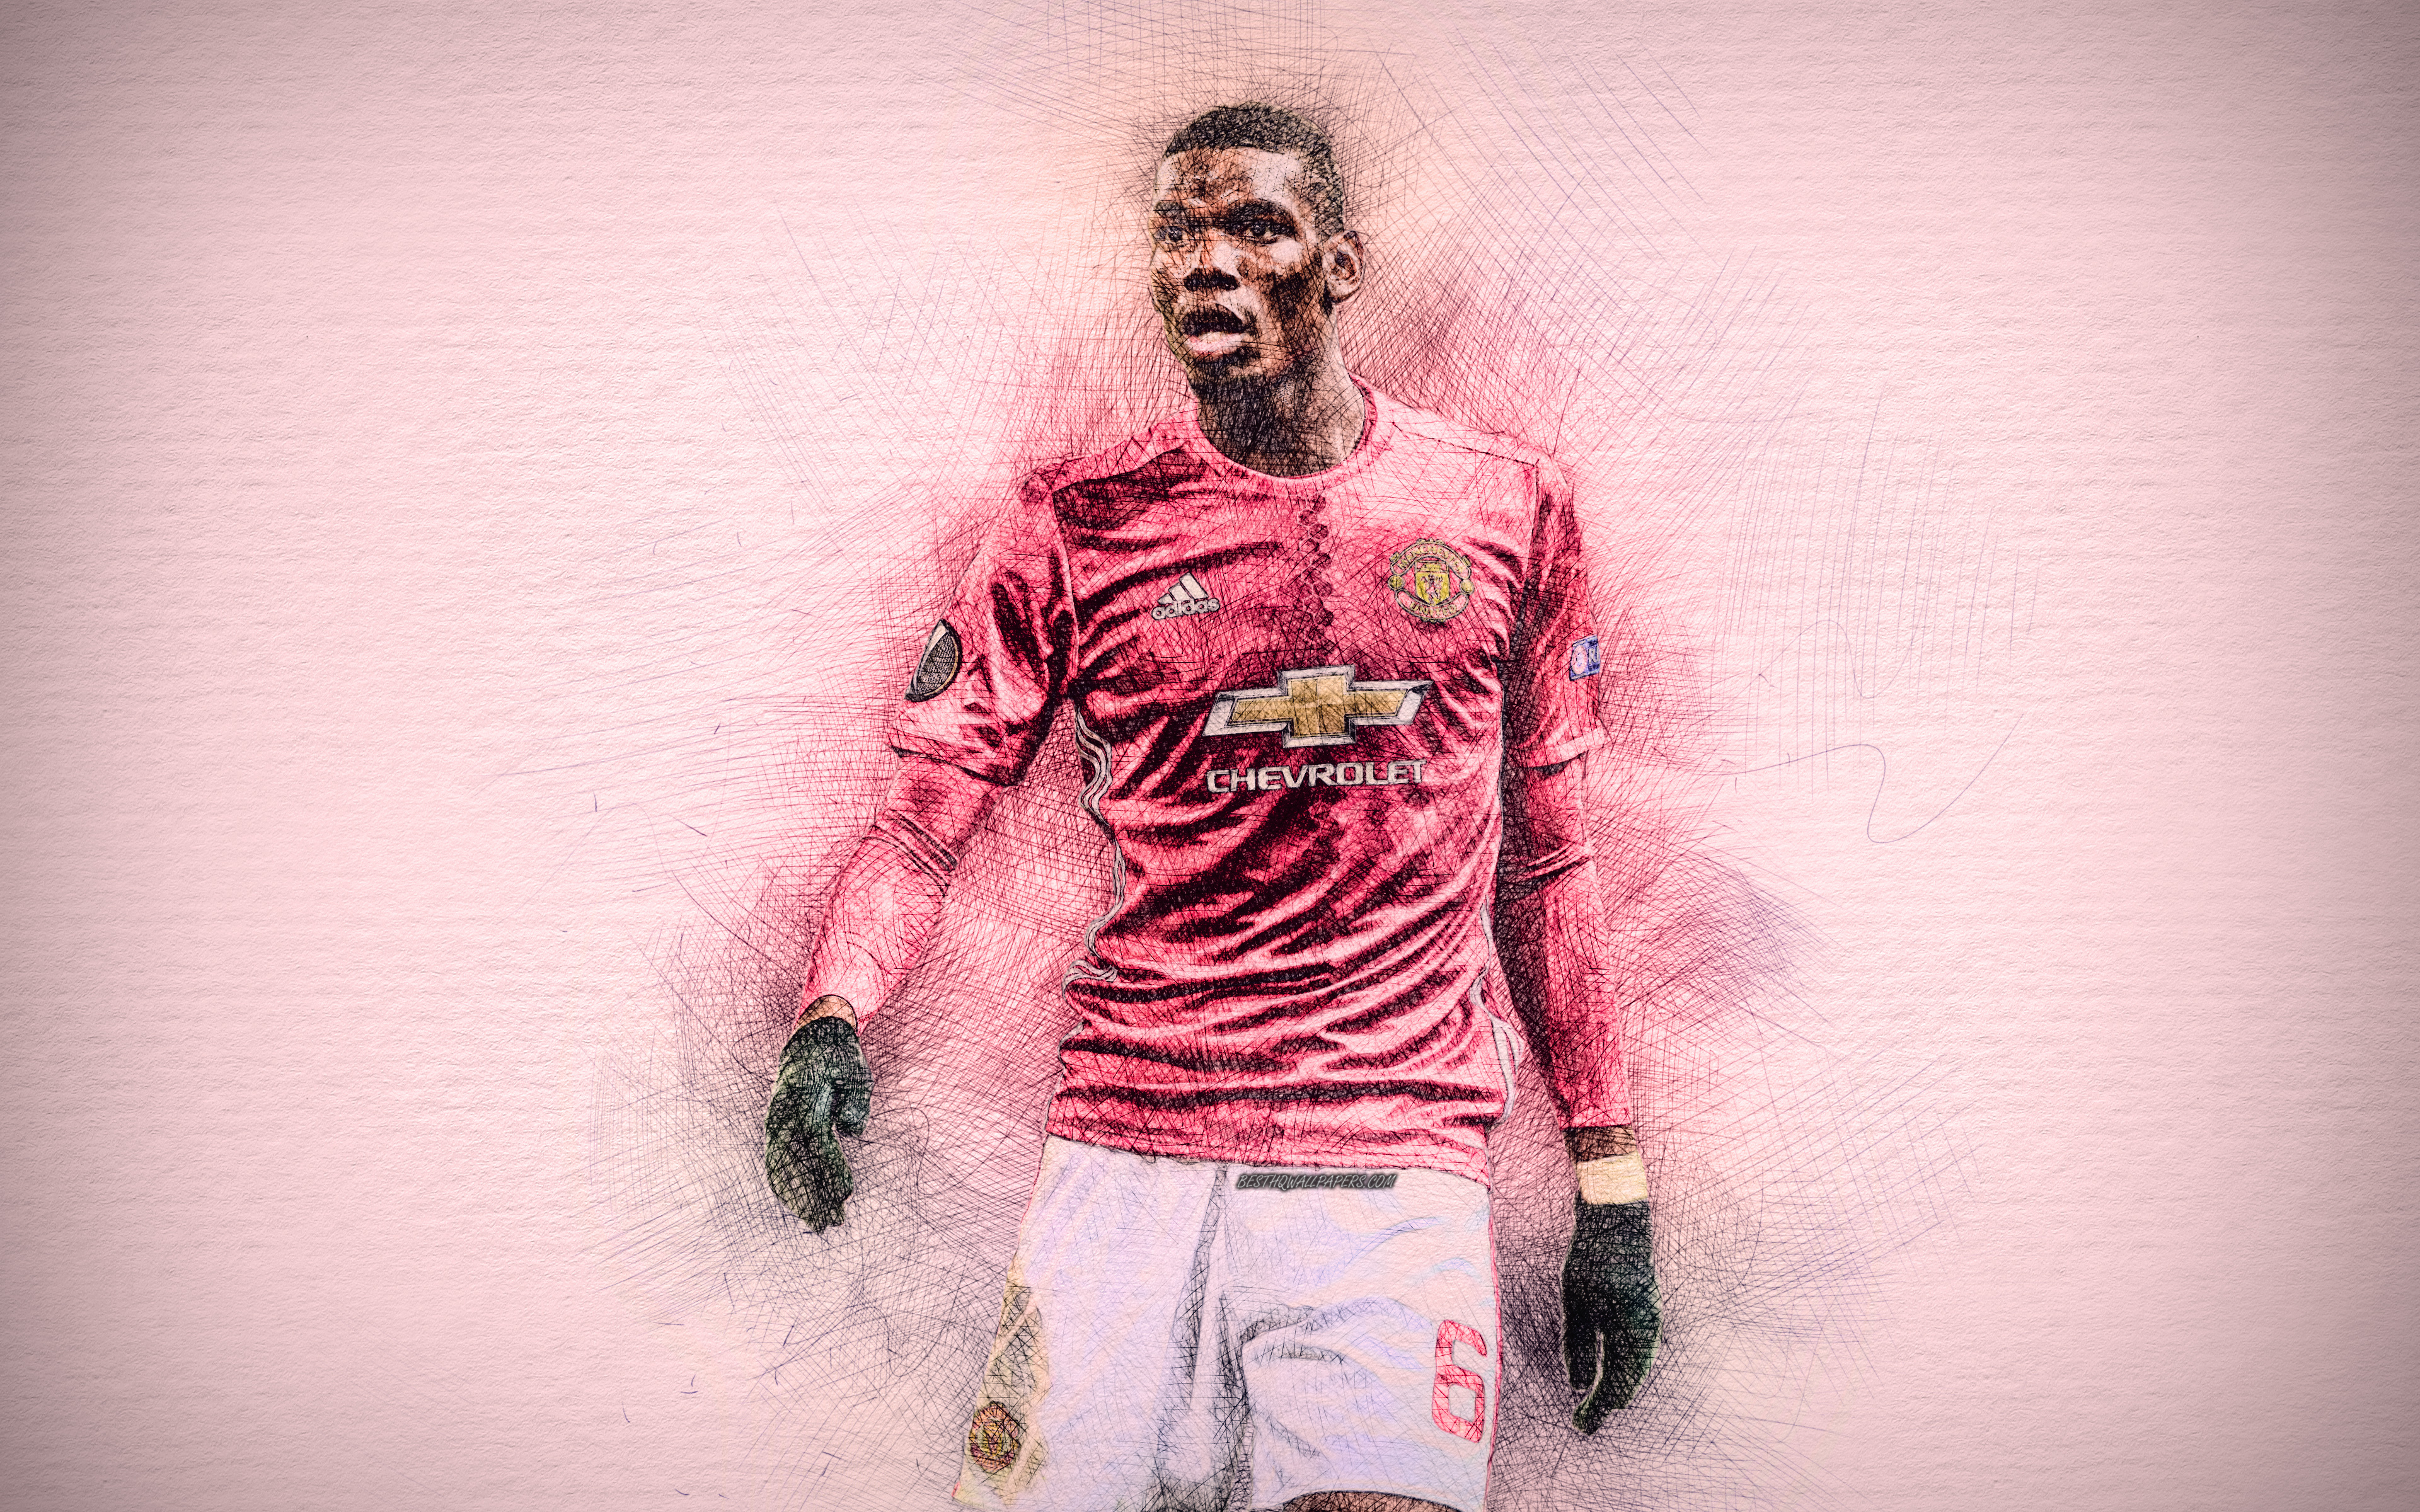 1125x2436 Paul Pogba Fc Manchester United Iphone Xs Iphone 10 Iphone X Wallpaper Hd Sports 4k Wallpapers Images Photos And Background